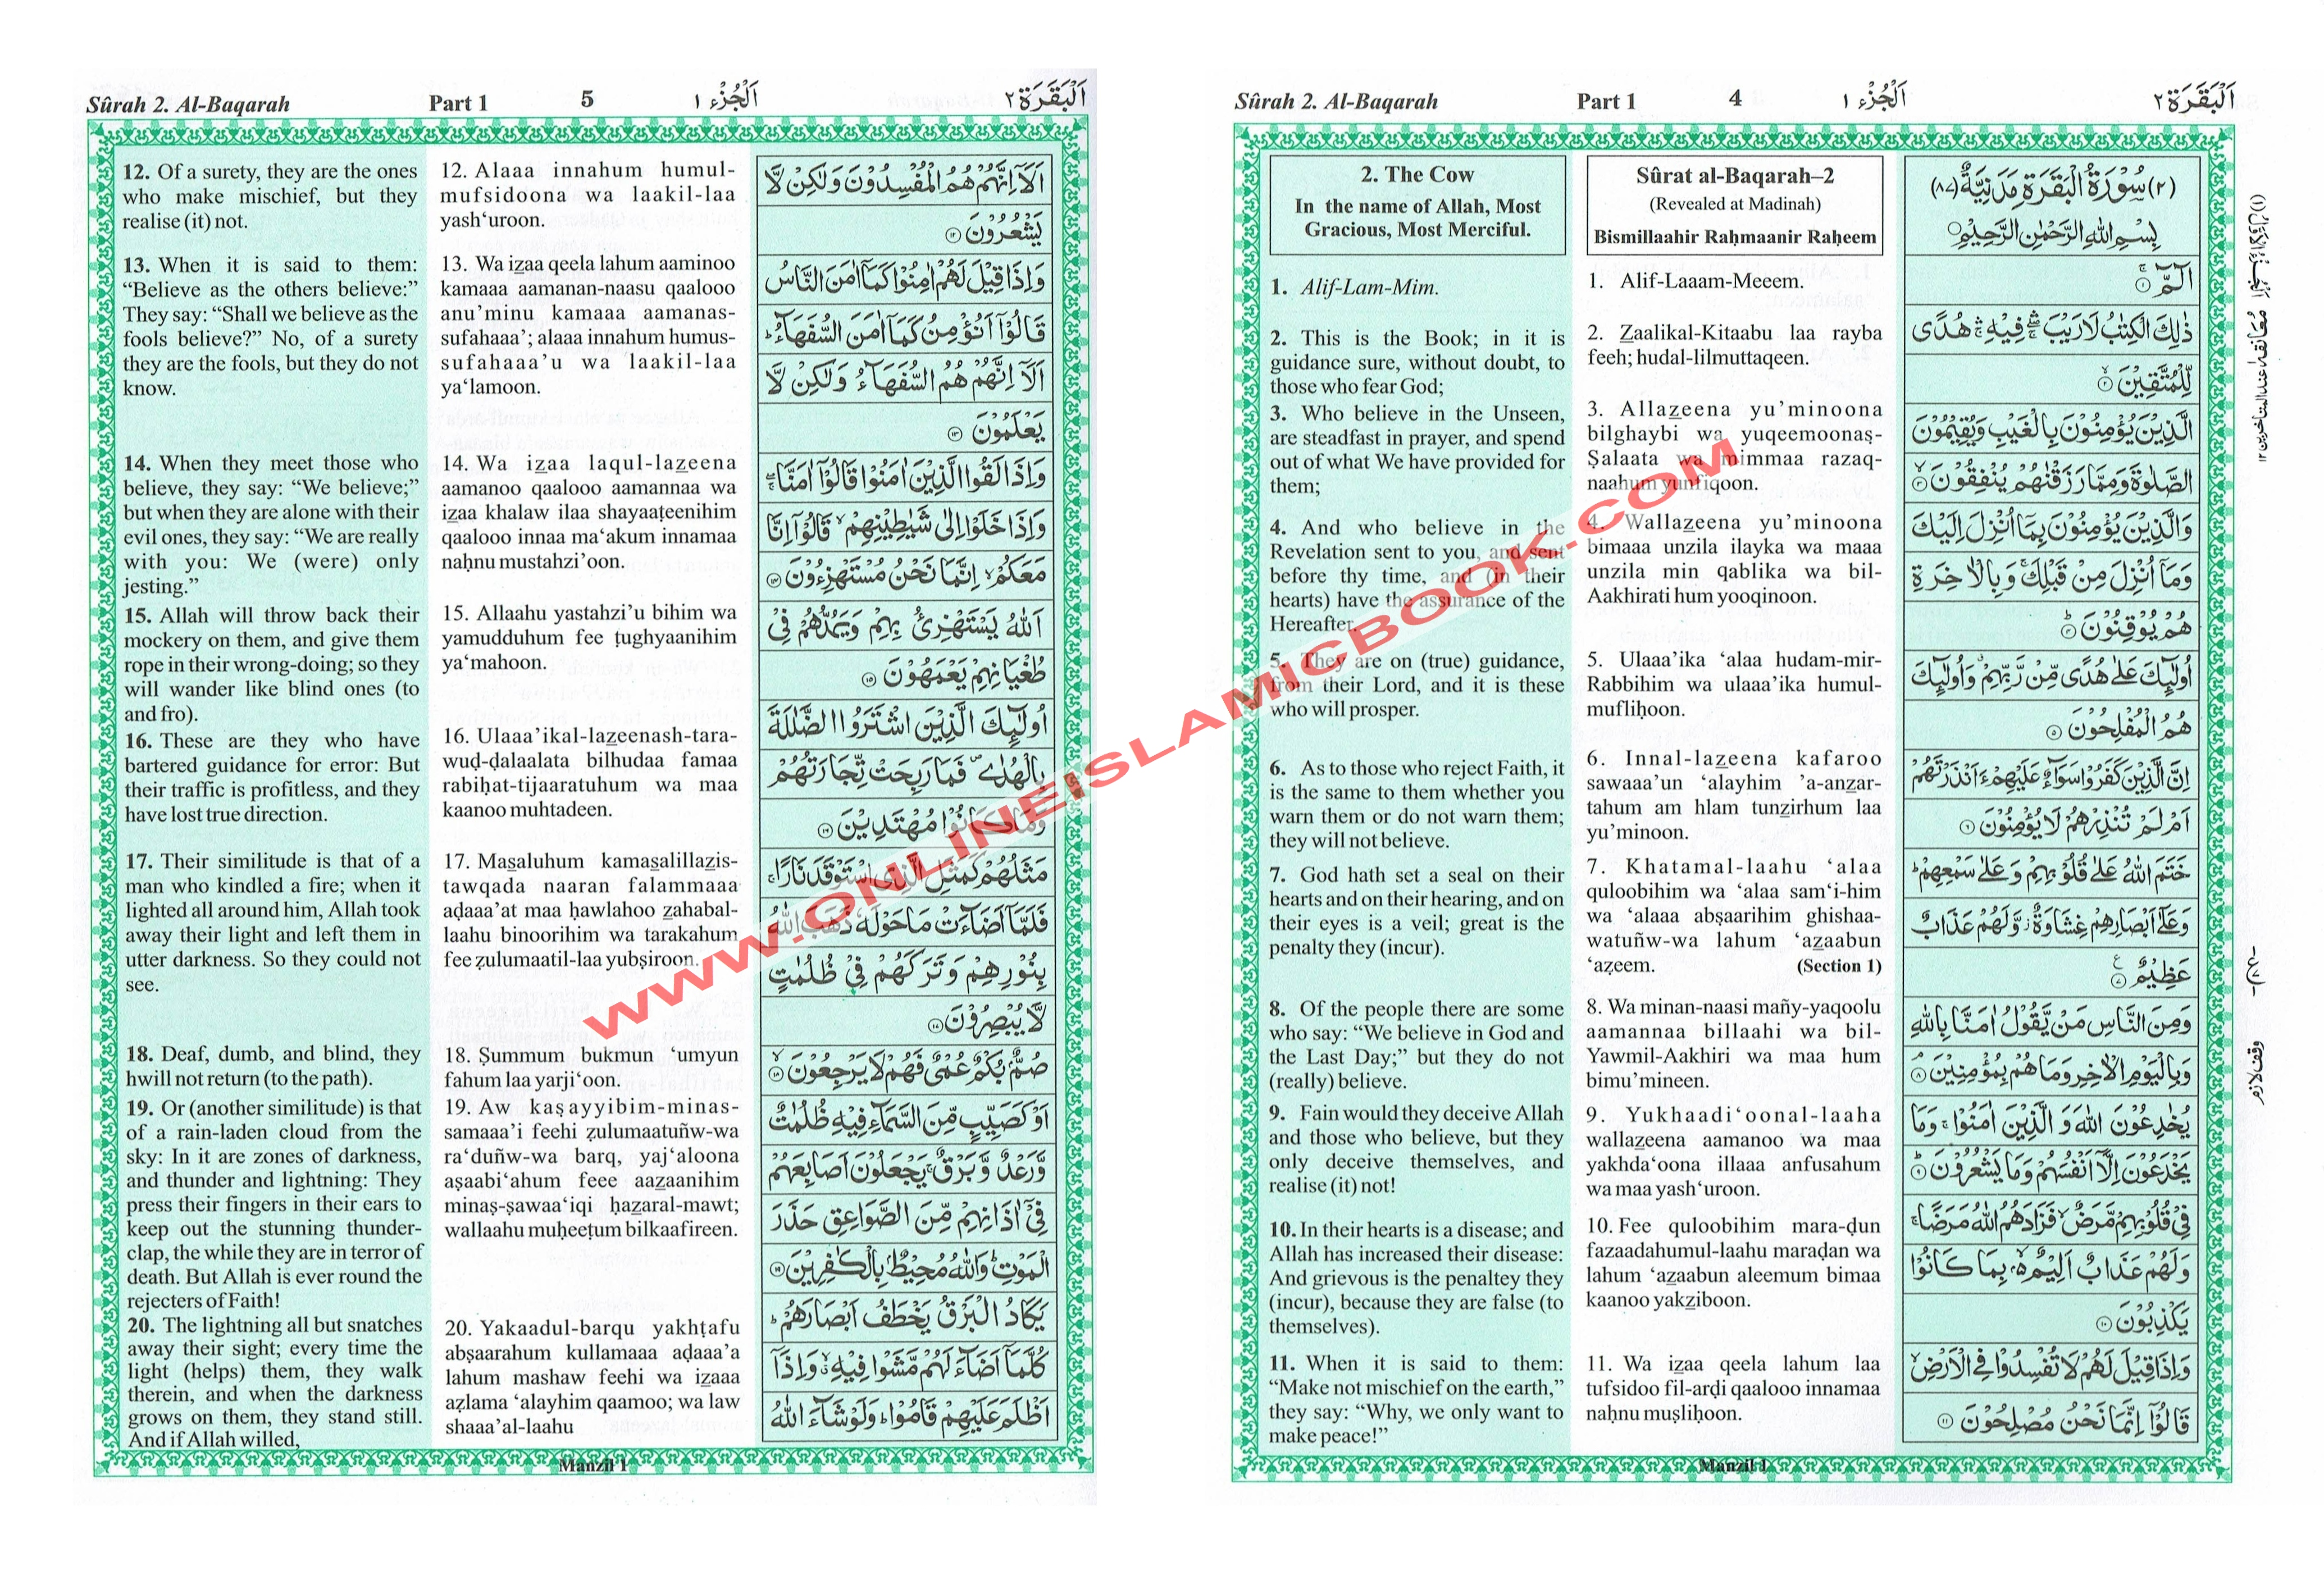 the-holy-qur-an-transliteration-in-roman-script-and-english-translation-with-arabic-text-paperback-4-.jpg